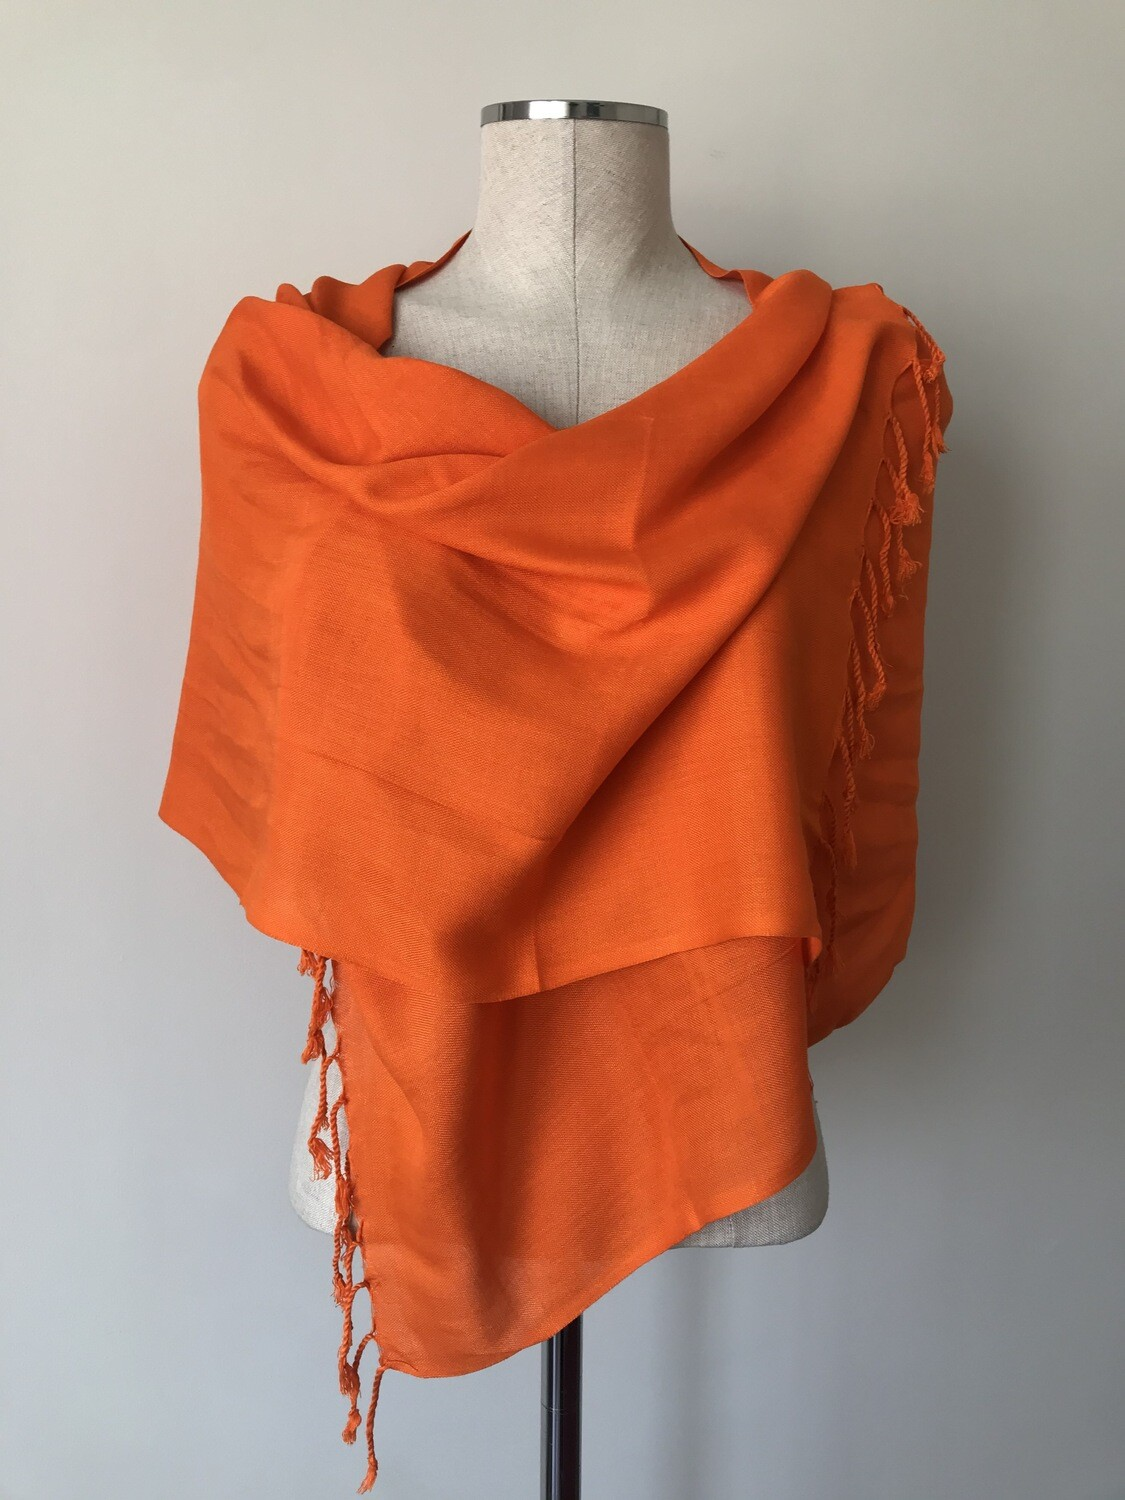 Plain Orange Small Scarf